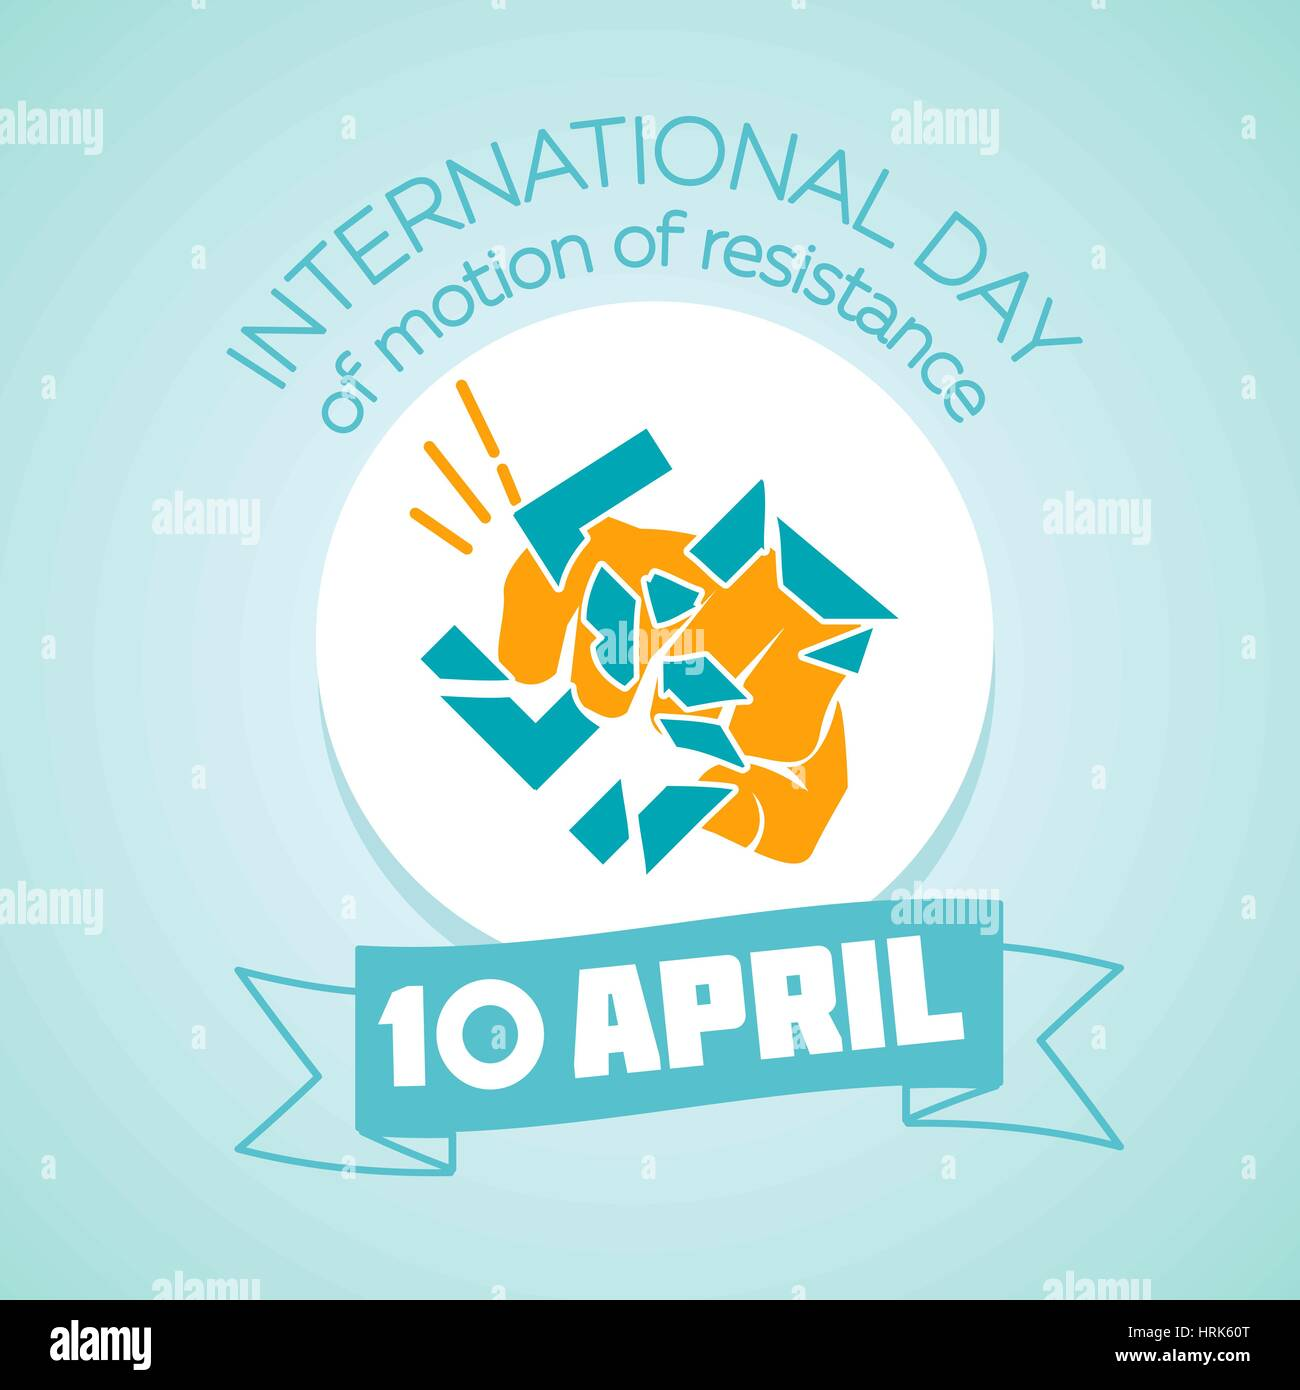 Calendar for each day on April 10  Holiday - International